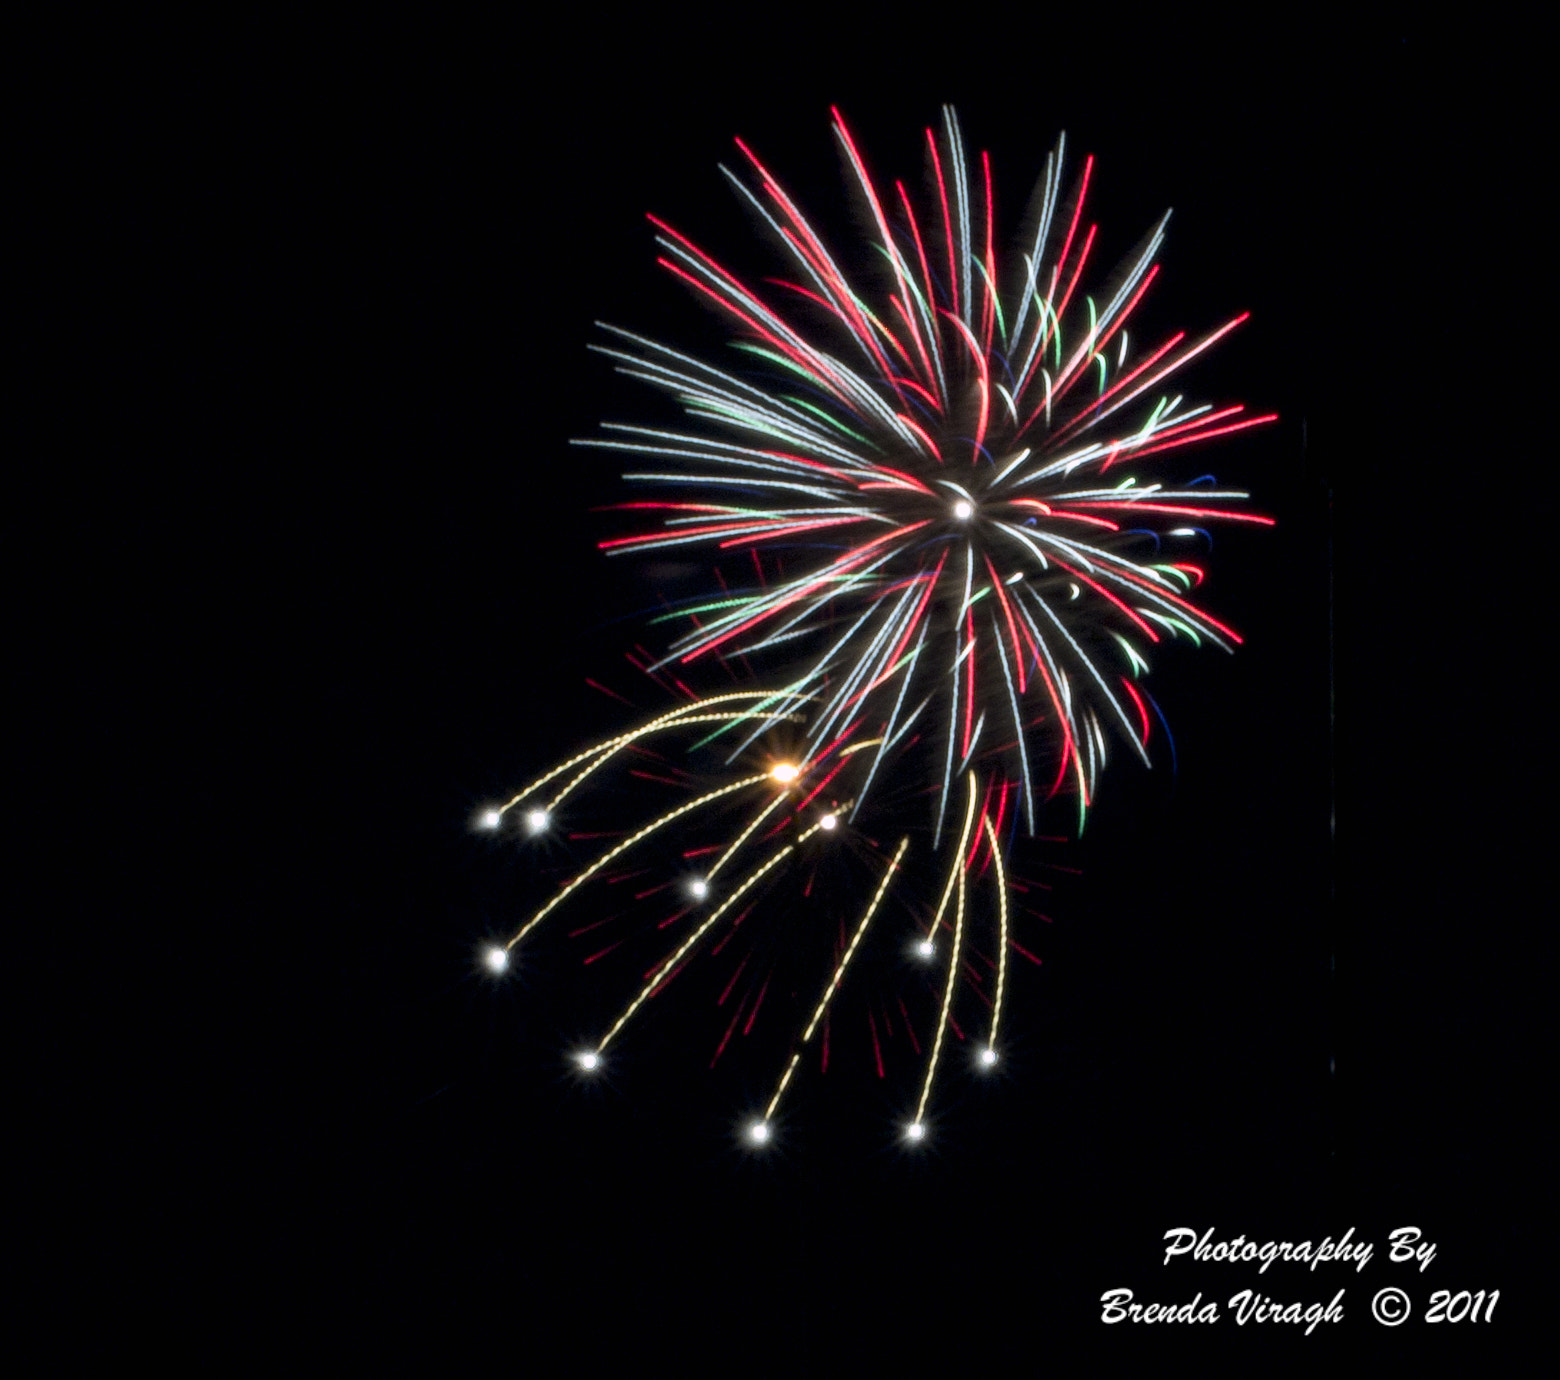 Photograph Fireworks by Brenda Viragh on 500px